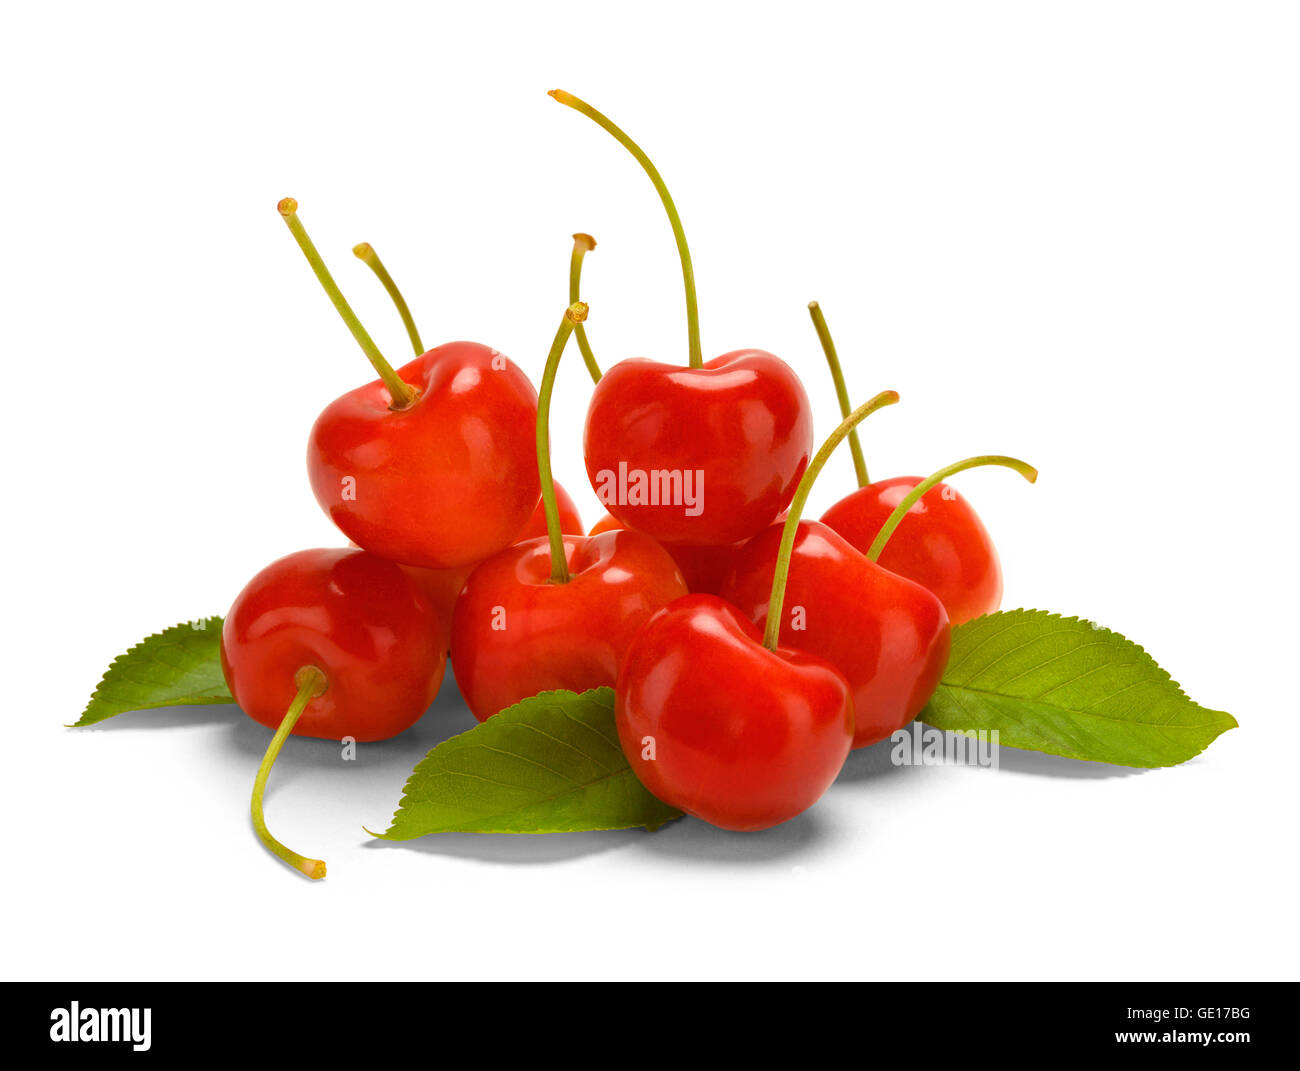 Pile of Cherries Isolated on White Background. - Stock Image